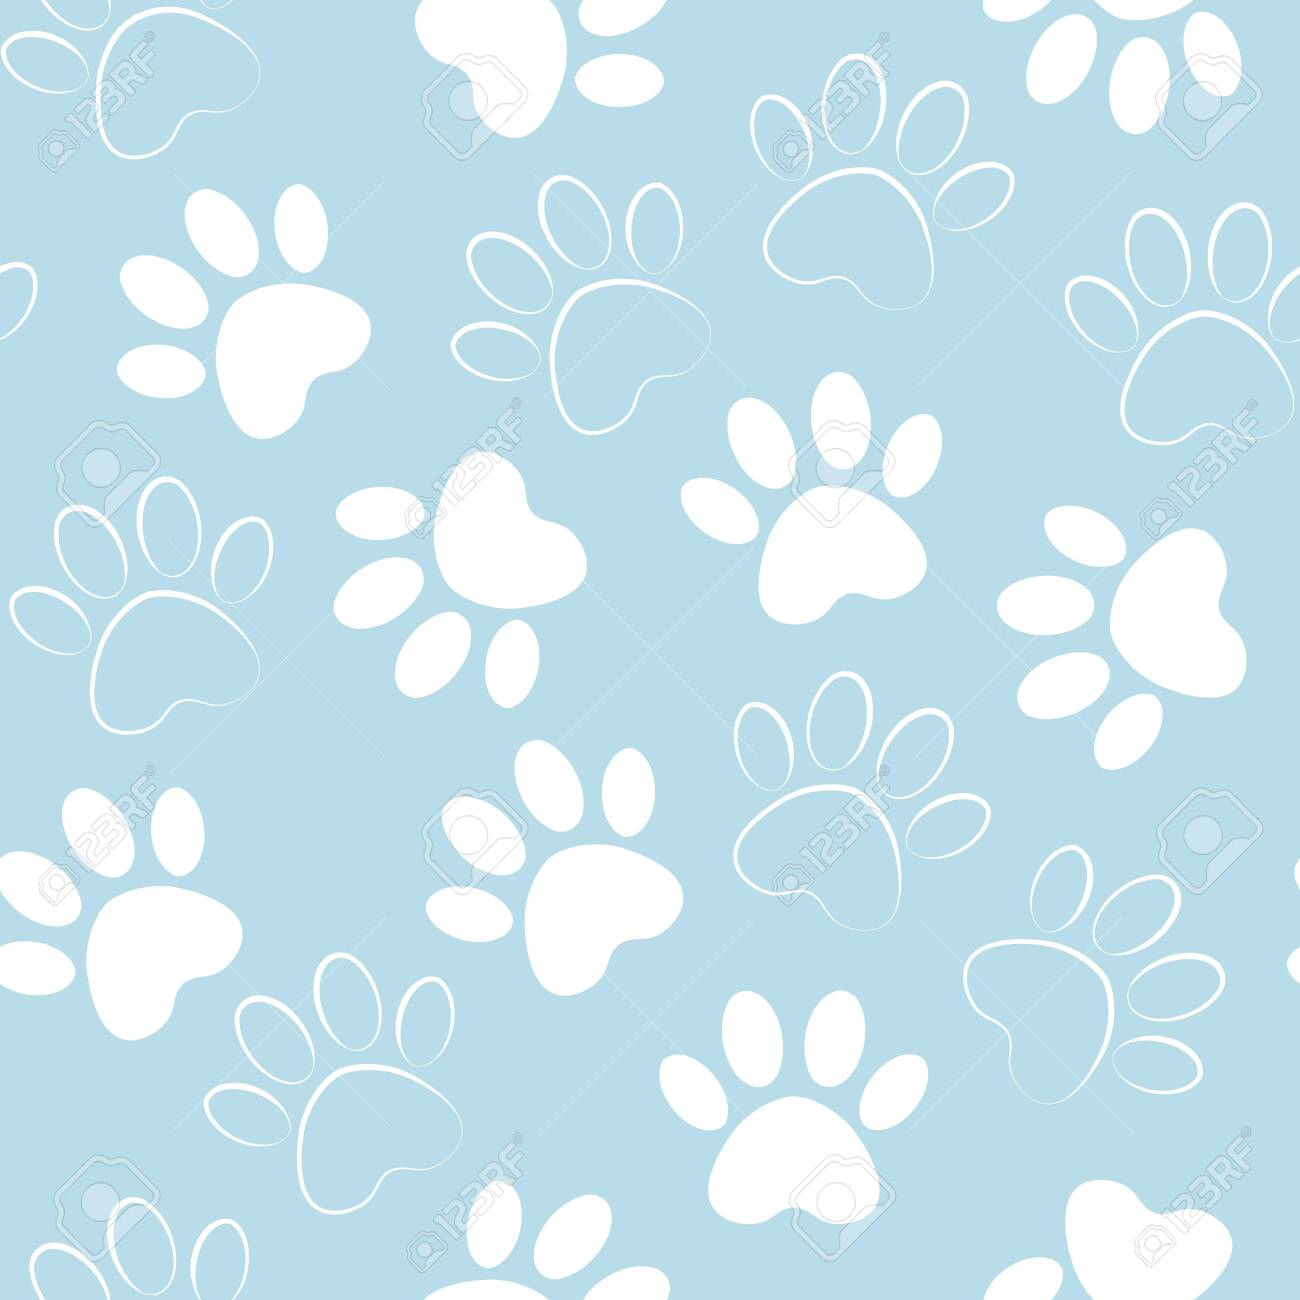 8e76295beea8 backdrop with silhouettes of cat or dog footprint. Vector illustration  animal paw track pattern.